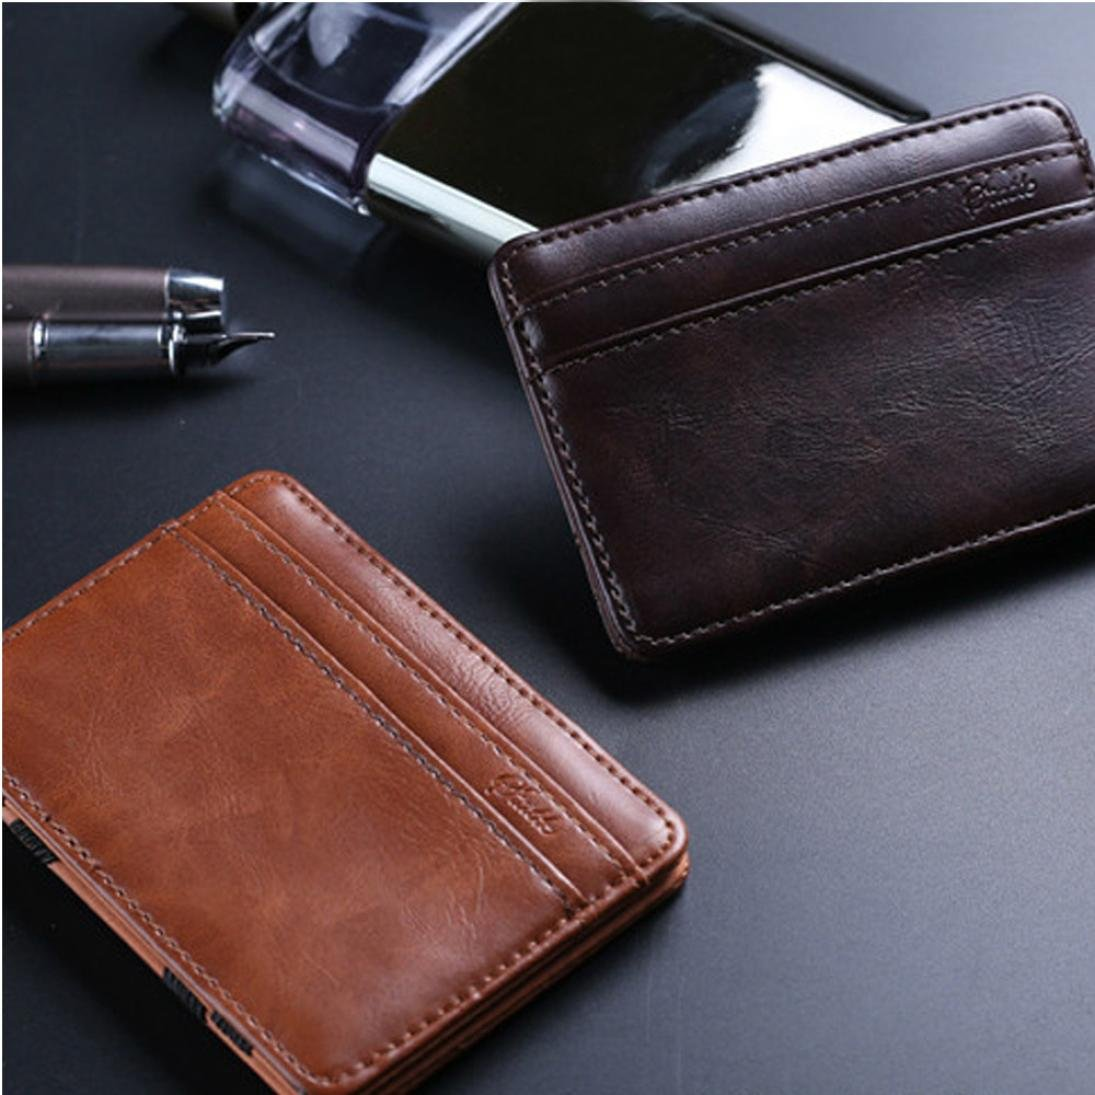 Pausseo Male Mini Leather Wallet ID Credit Card Wallet Small Wallet Coin Purse C-Coffee